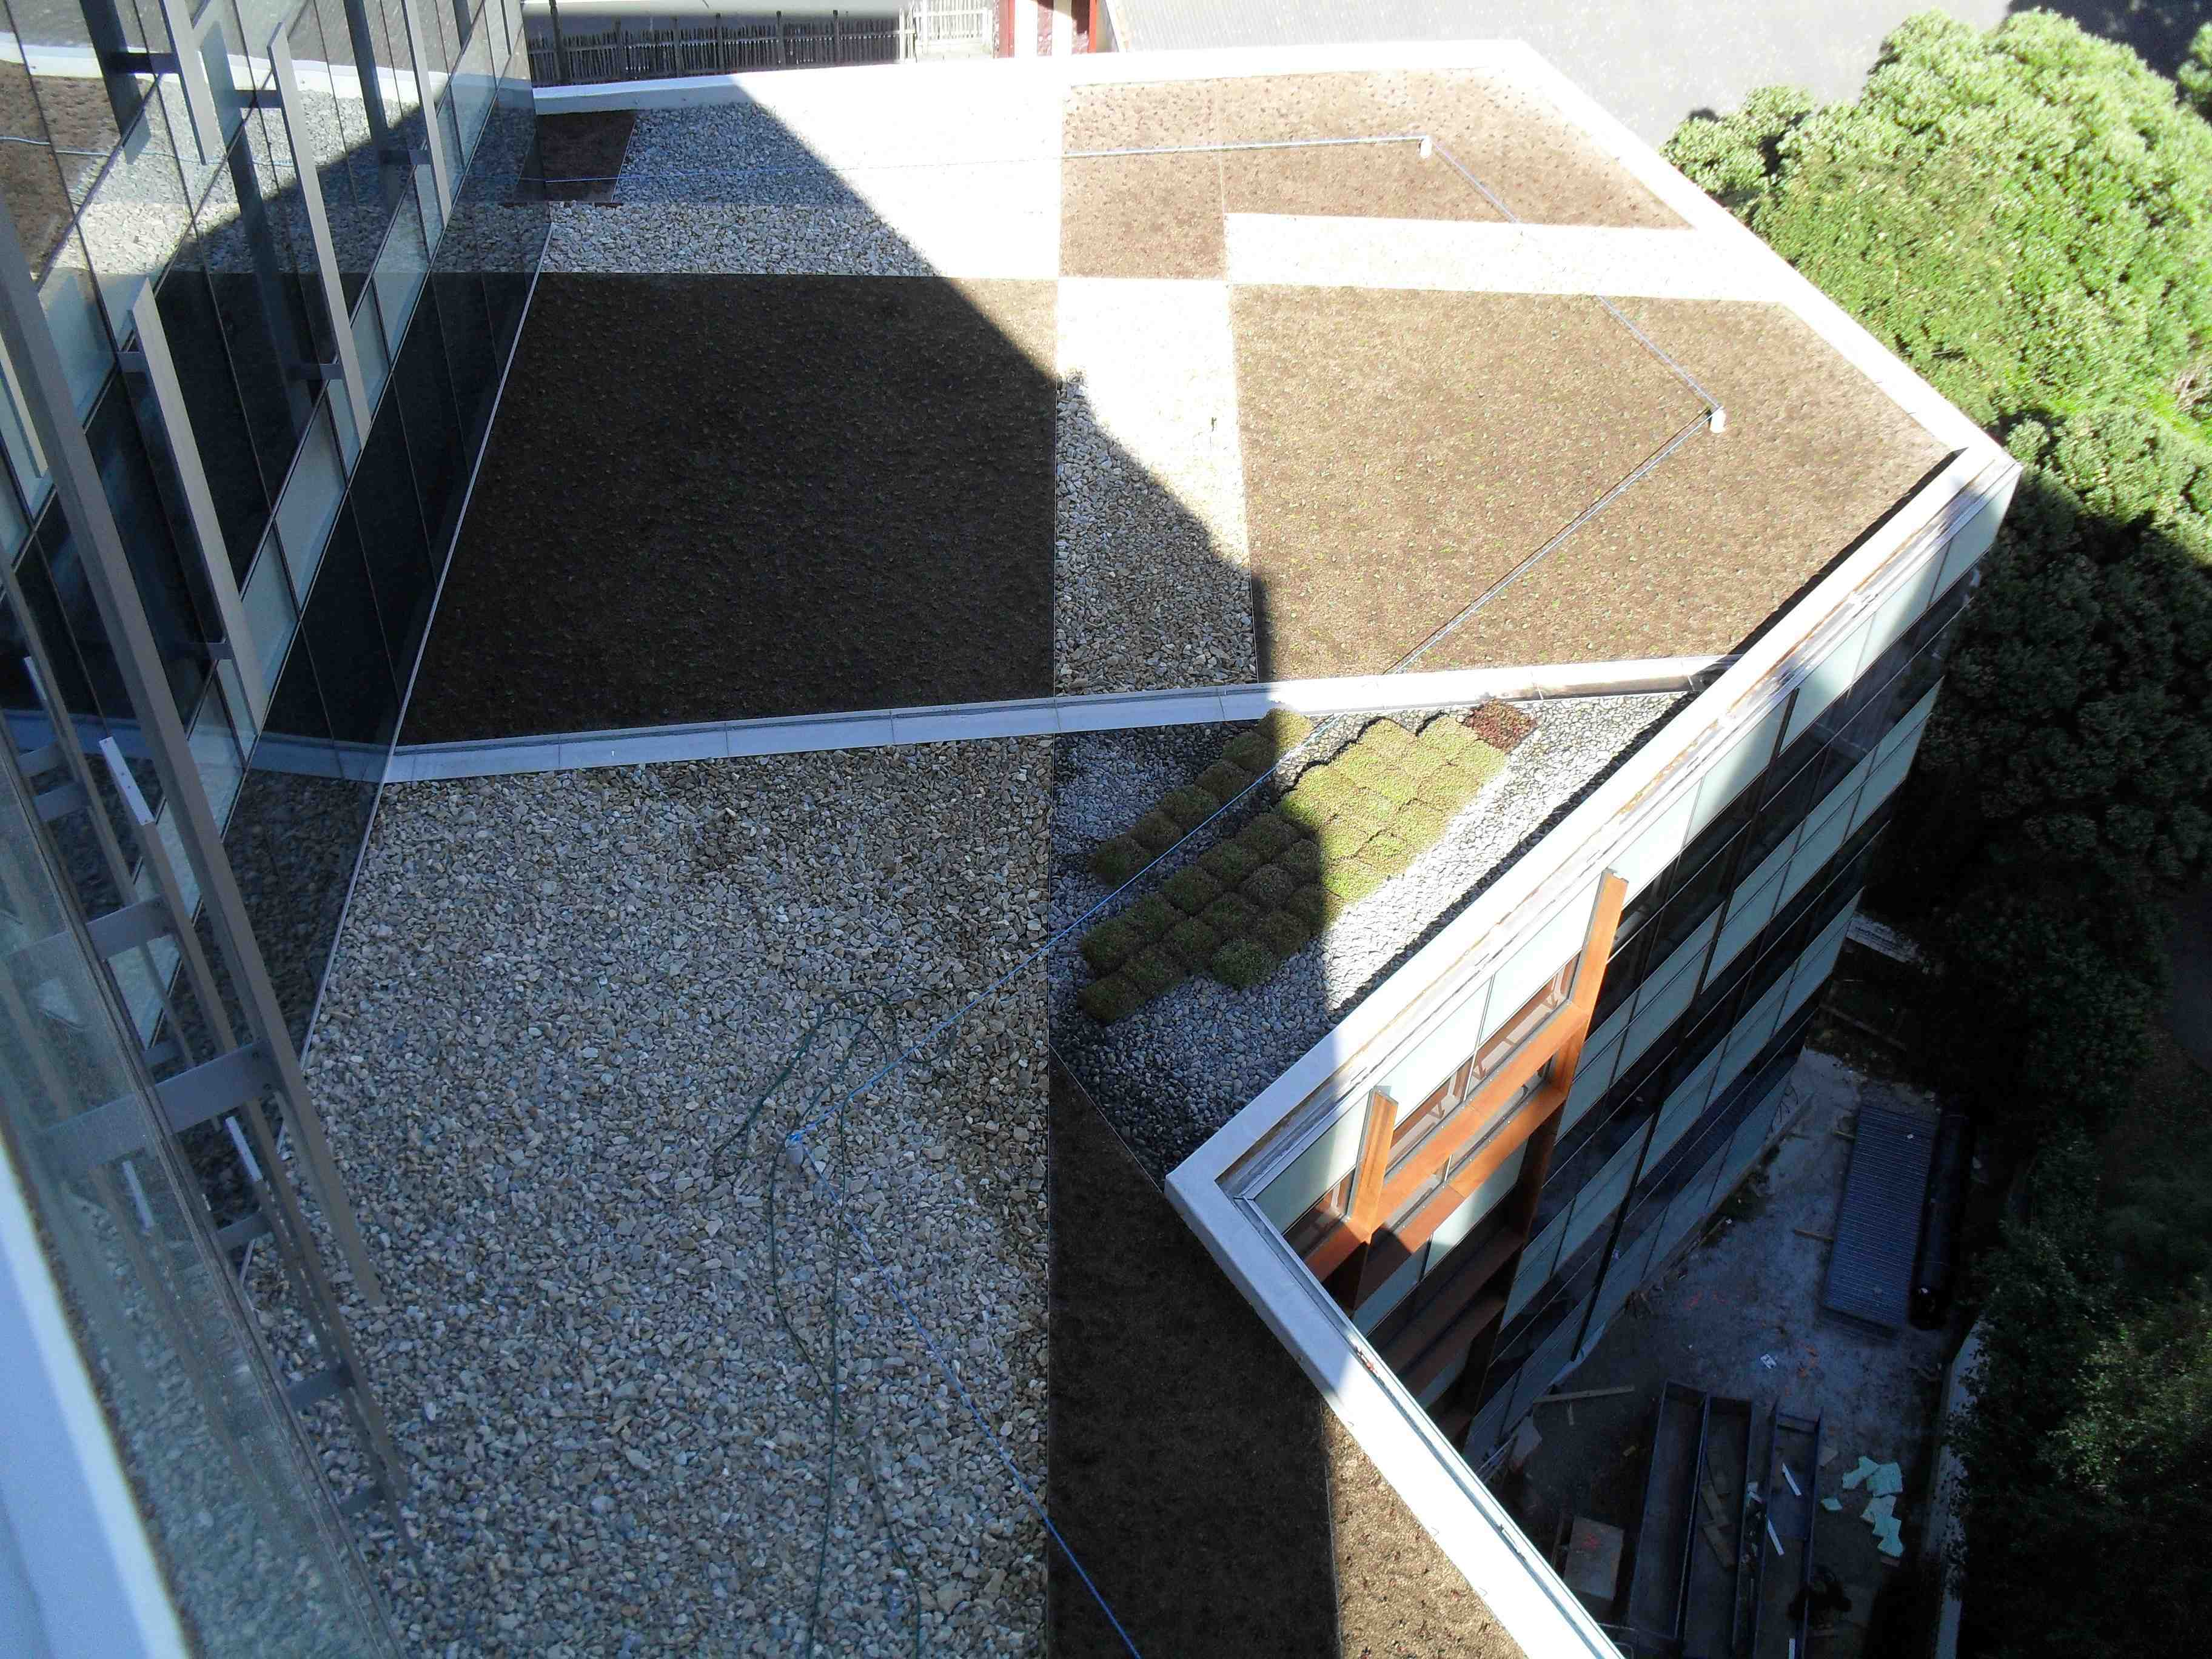 Living roof at NZI finished from level 9